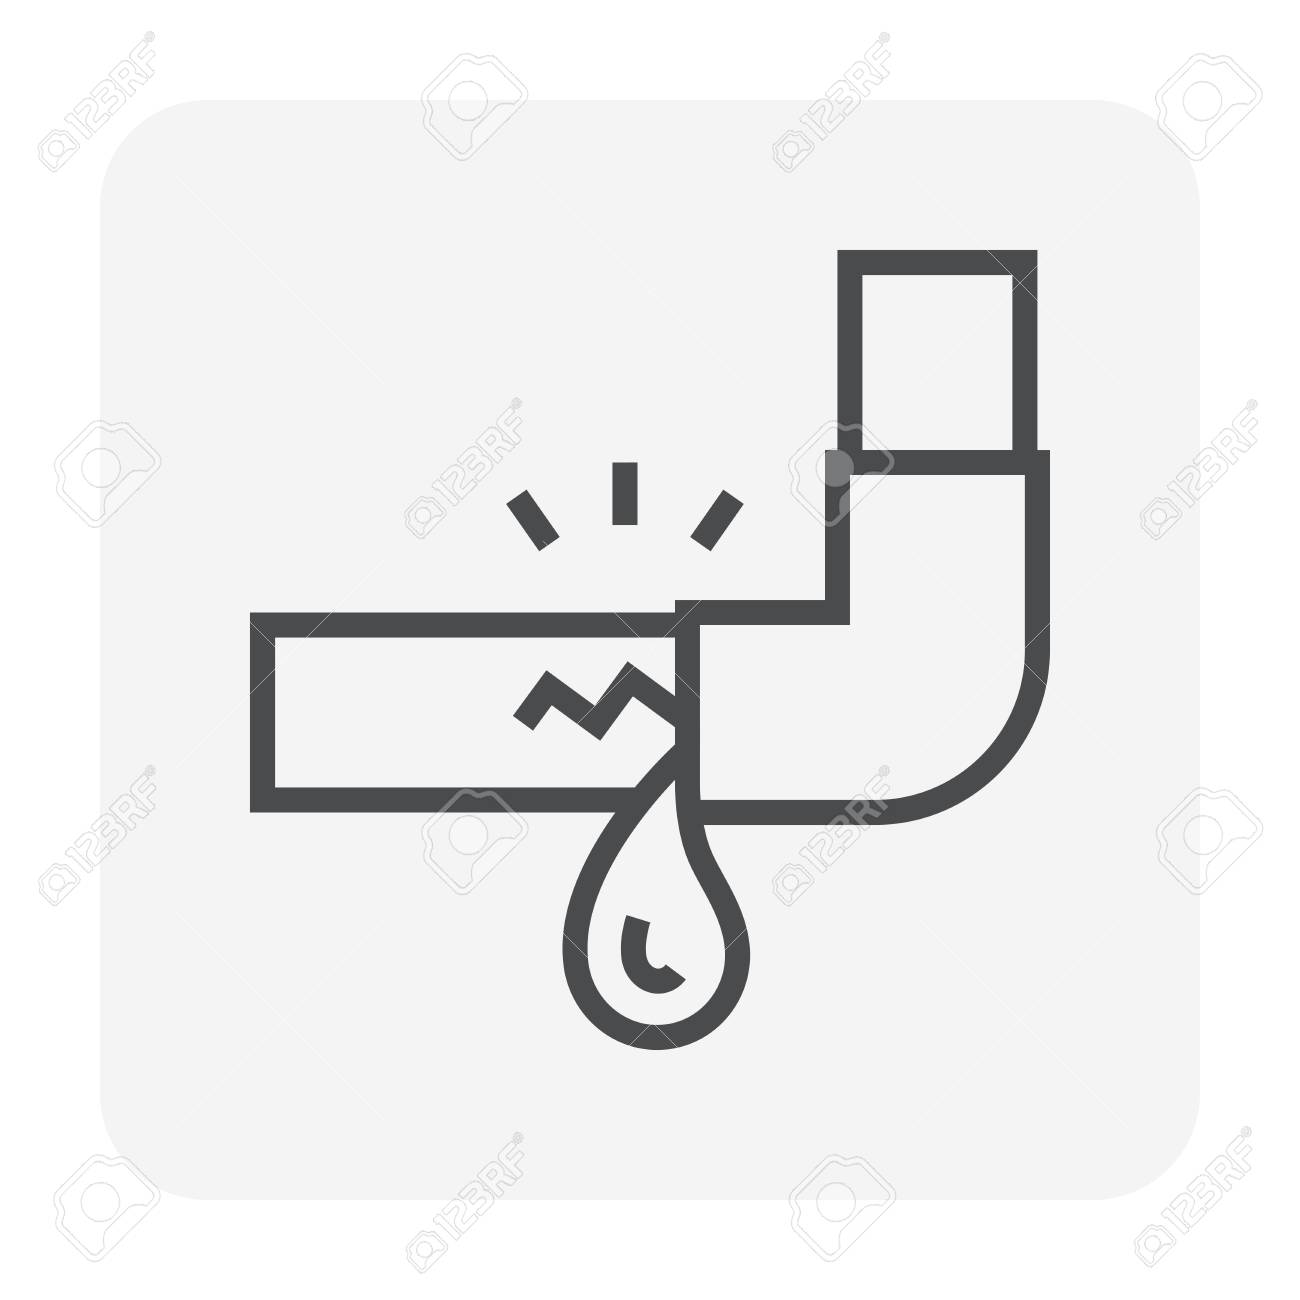 Burst pipe and water leak icon, 64x64 perfect pixel and editable